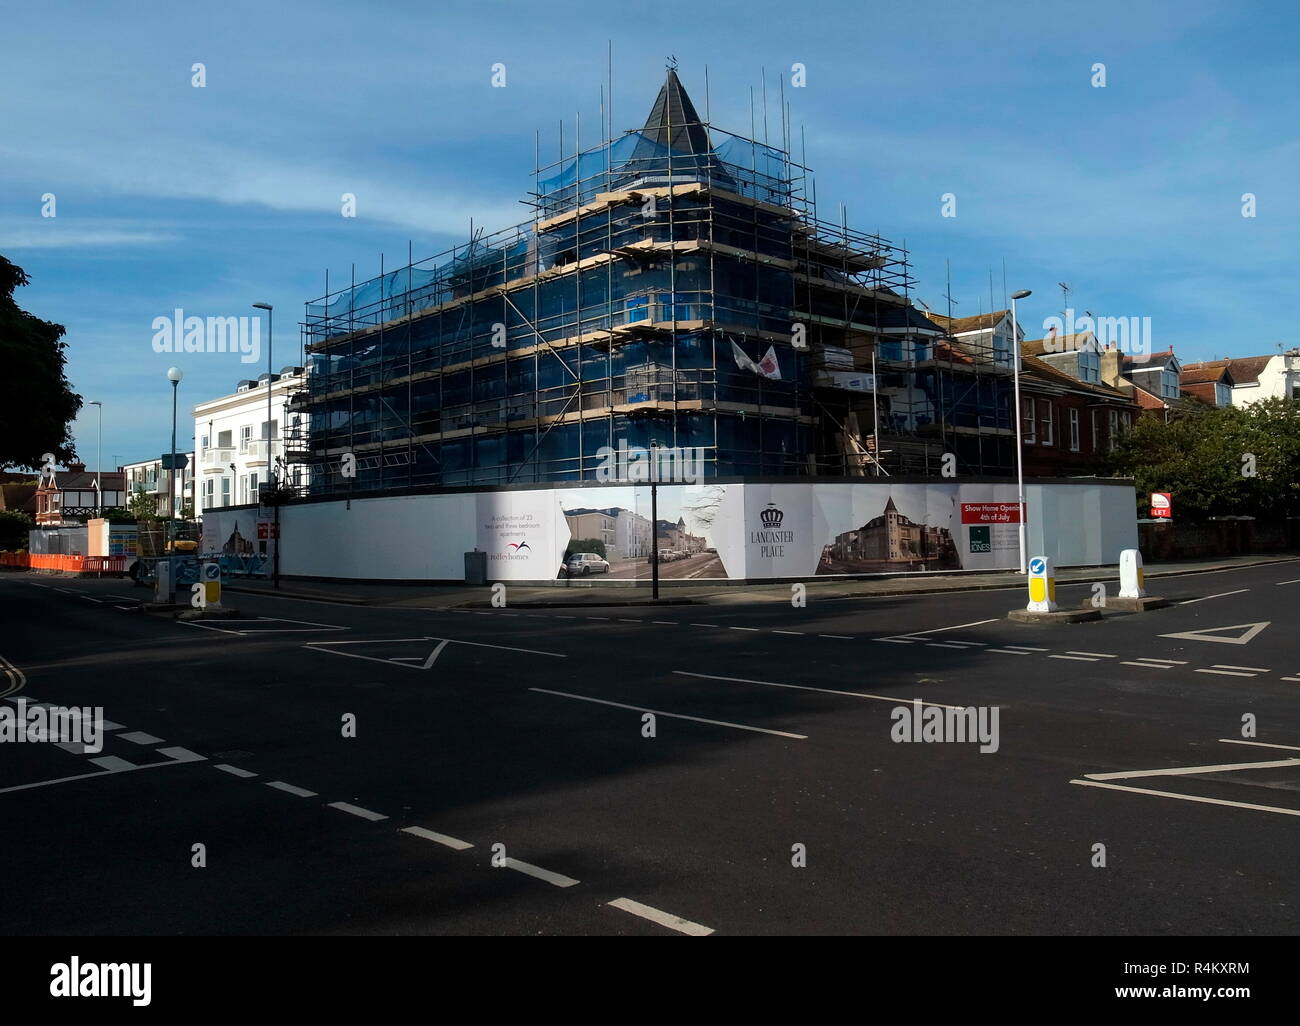 AJAXNETPHOTO. 2015. WORTHING, ENGLAND. - LANCASTER PLACE - NEW RETIREMENT HOMES PROPERTY DEVELOPMENT UNDER CONSTRUCTION ON SITE OF THE OLD BANK ON CORNER OF ROWLANDS AND HEENE ROAD.  PHOTO:JONATHAN EASTLAND/AJAX REF:GR152906_4707 - Stock Image